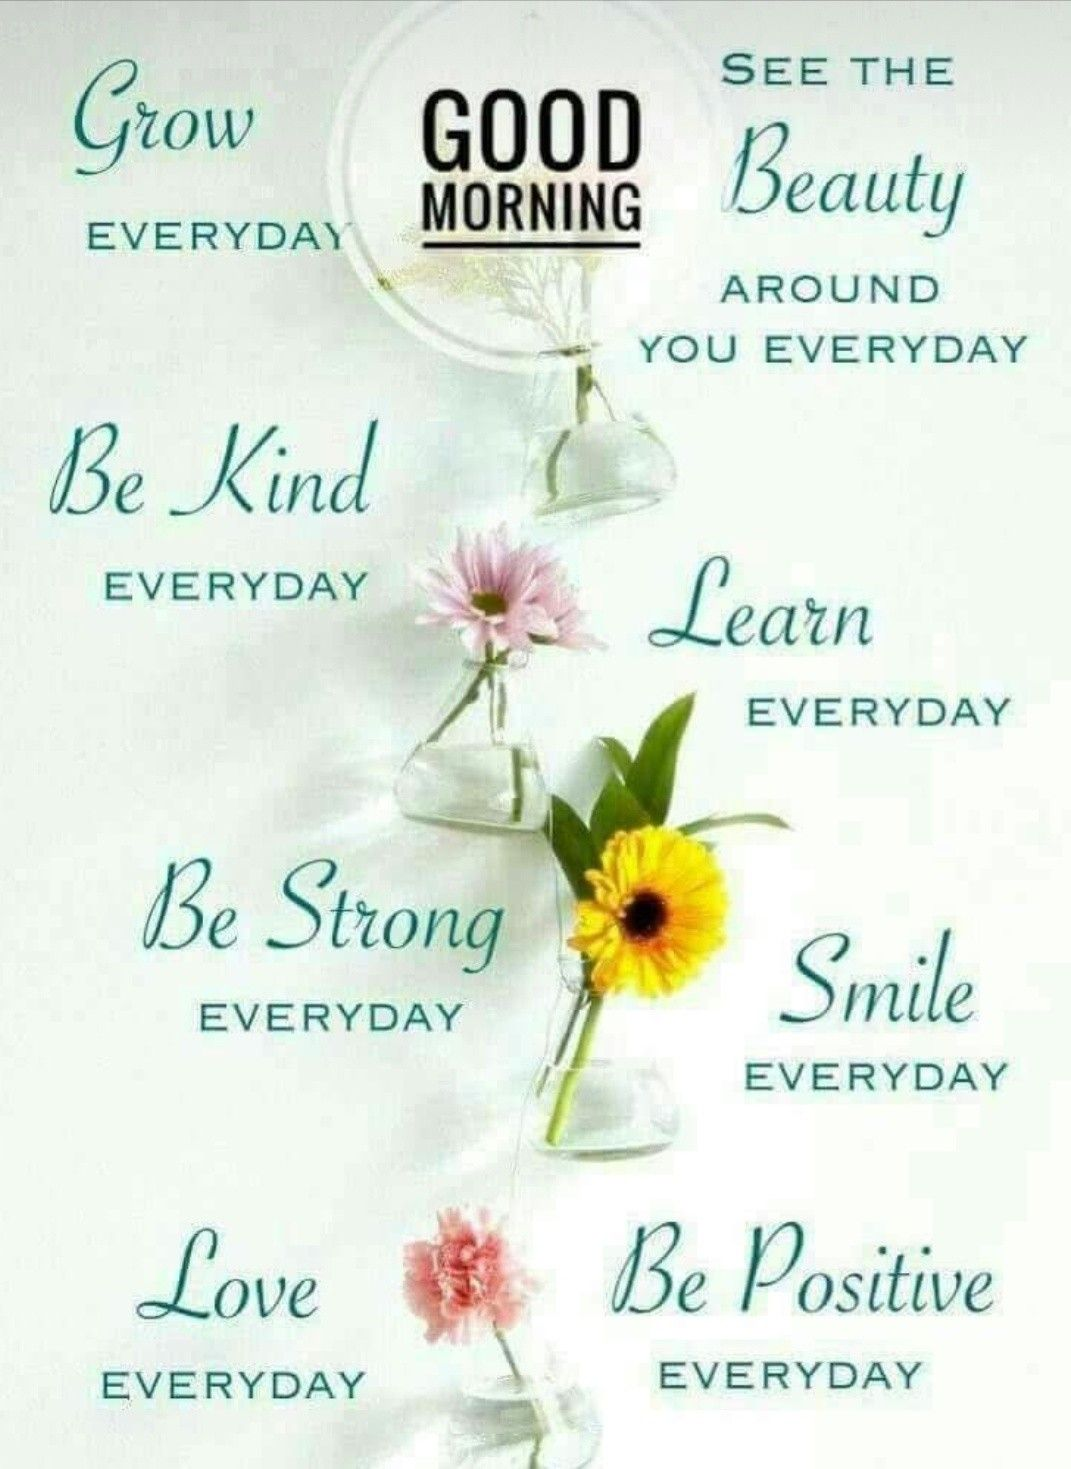 Pin by dinesh kumar pandey on good morning pinterest monday good afternoon motivational monday greetings faith virginia messages message passing loyalty text posts m4hsunfo